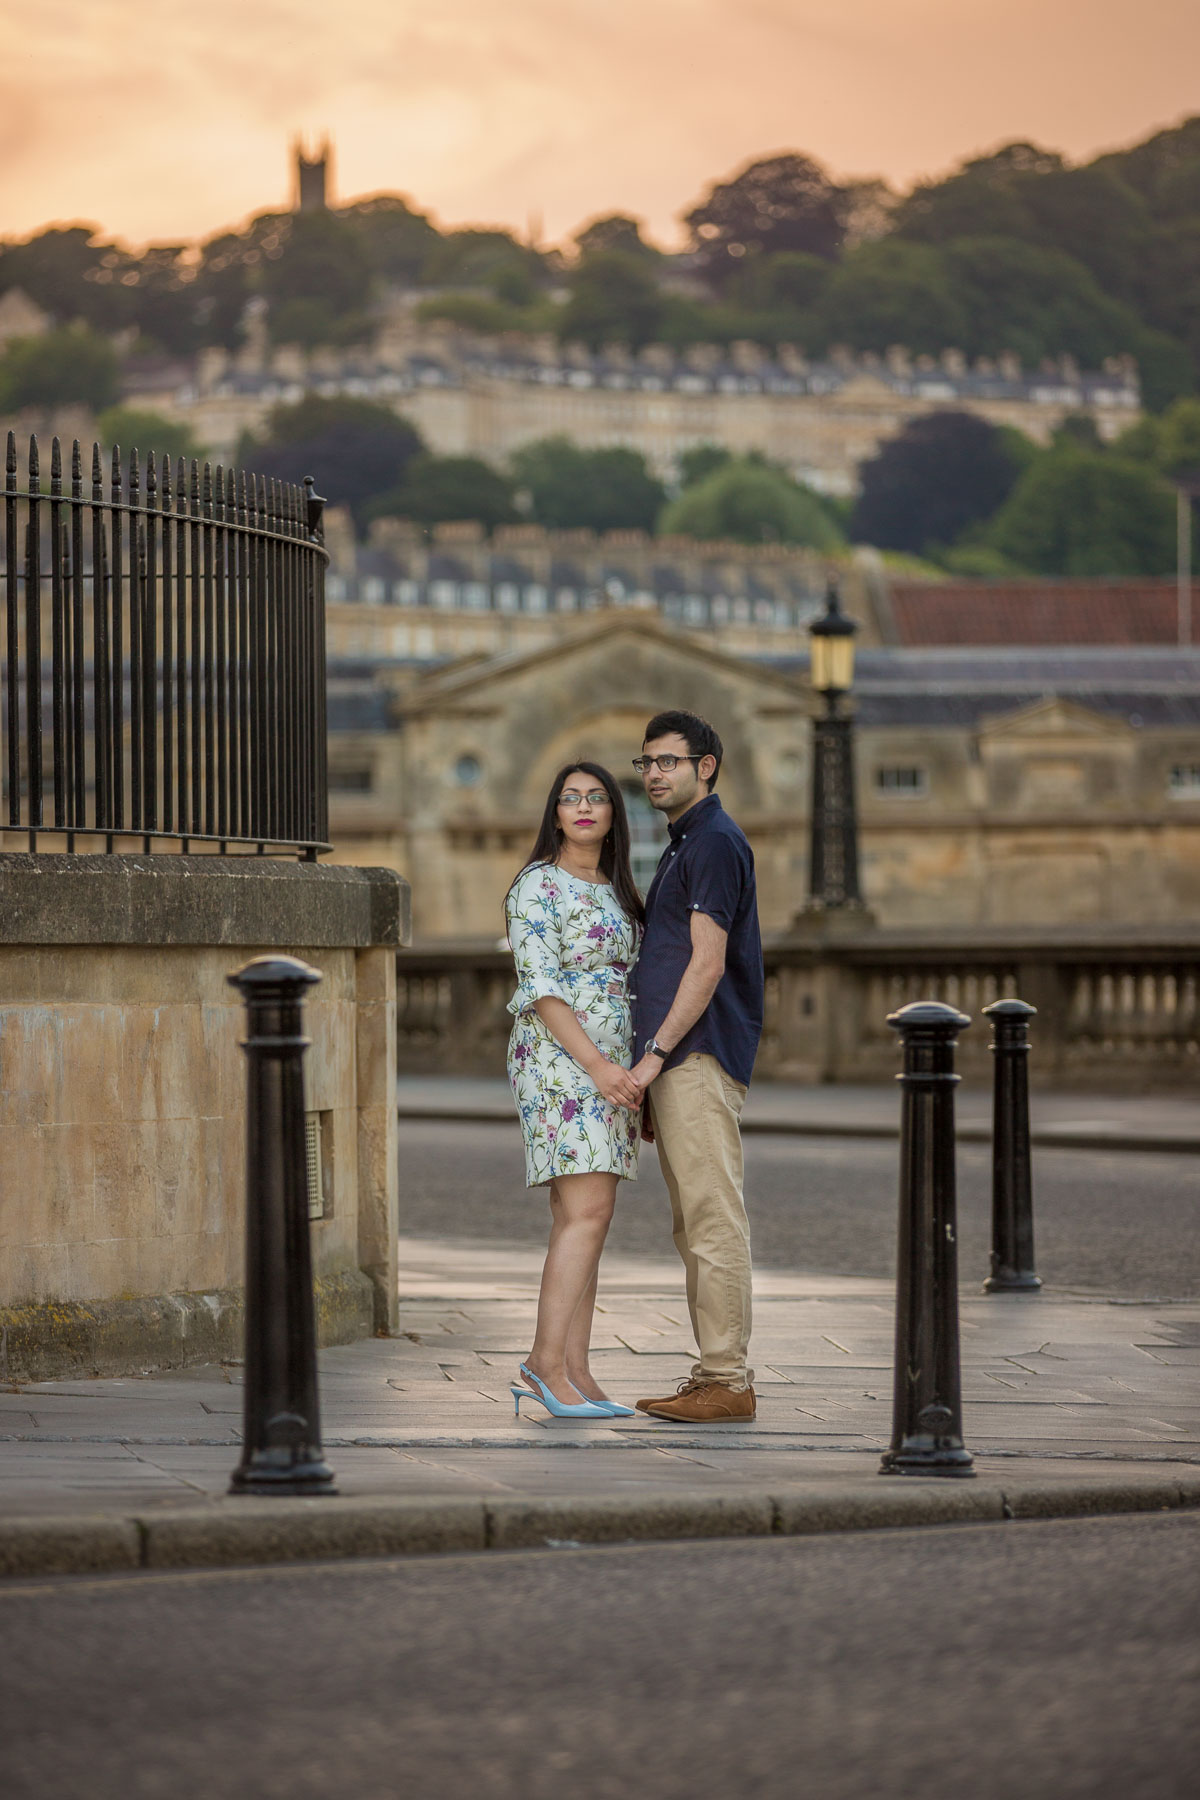 pre-wedding-engagement-shoot-bath-asian-wedding-photographer-london-natalia-smith-photography-0034.jpg